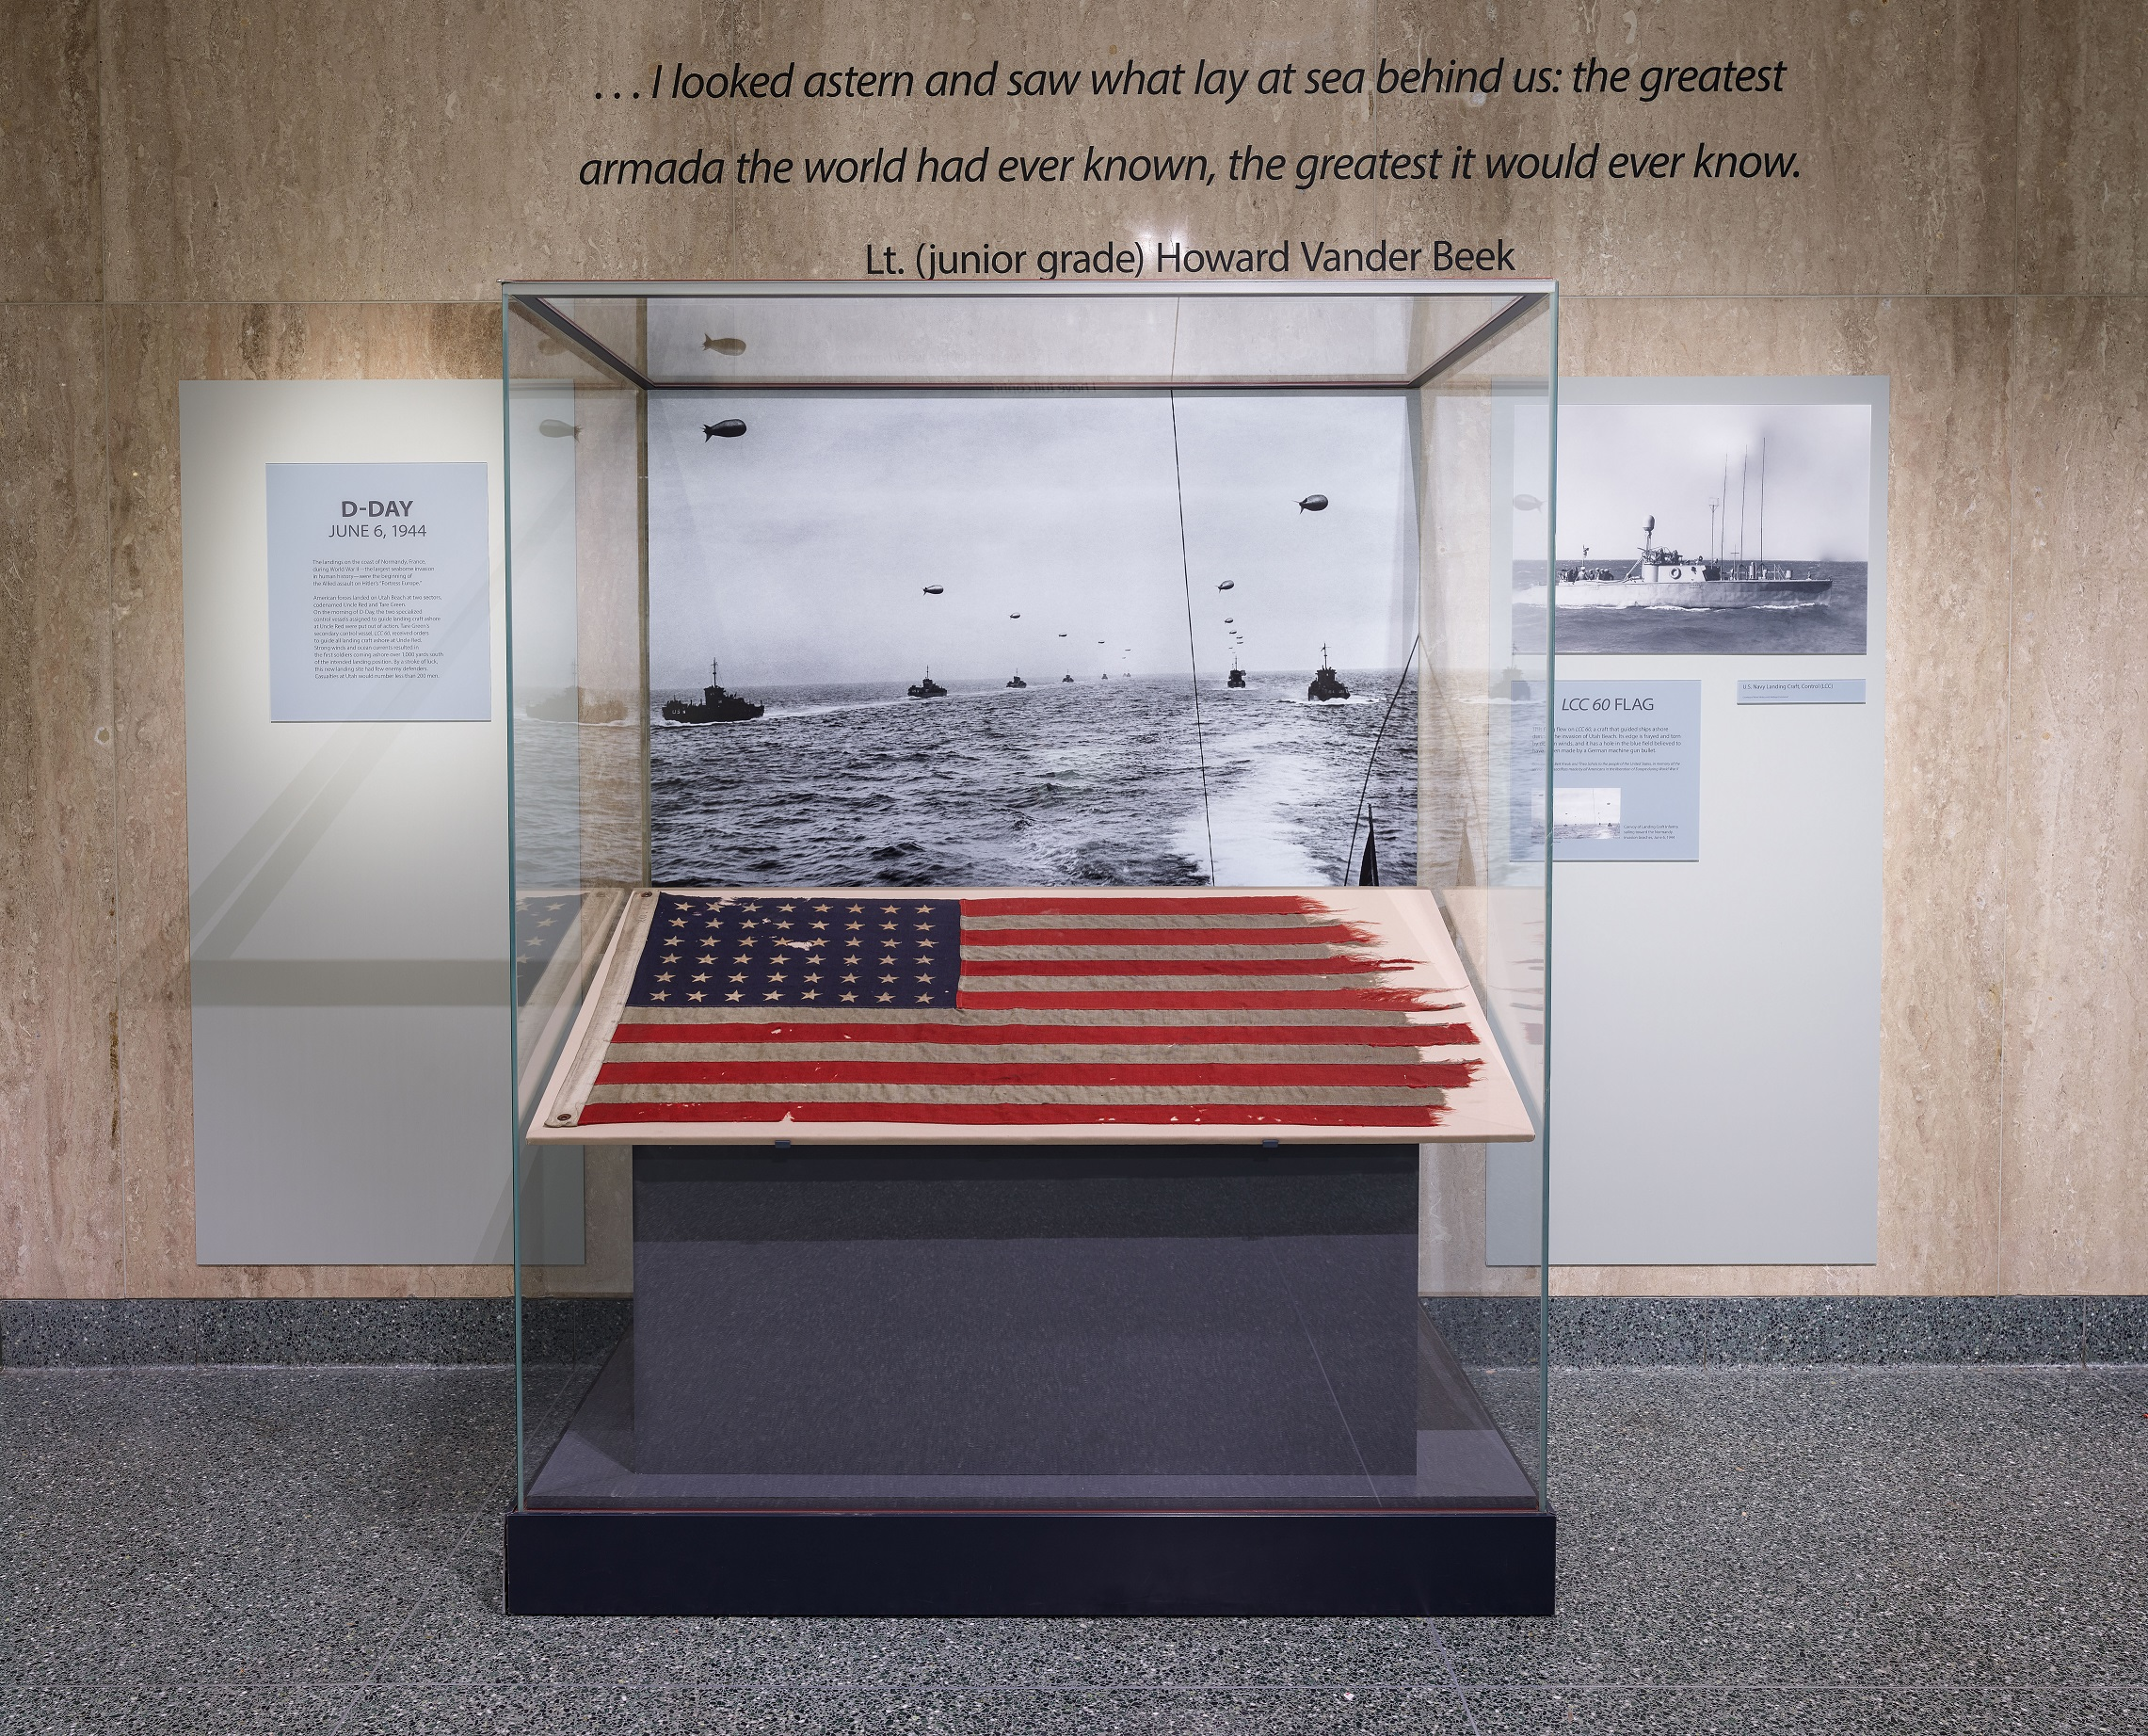 A flag sits in a glass case against a stone wall on which there is a quote. Signage and images are also visible.